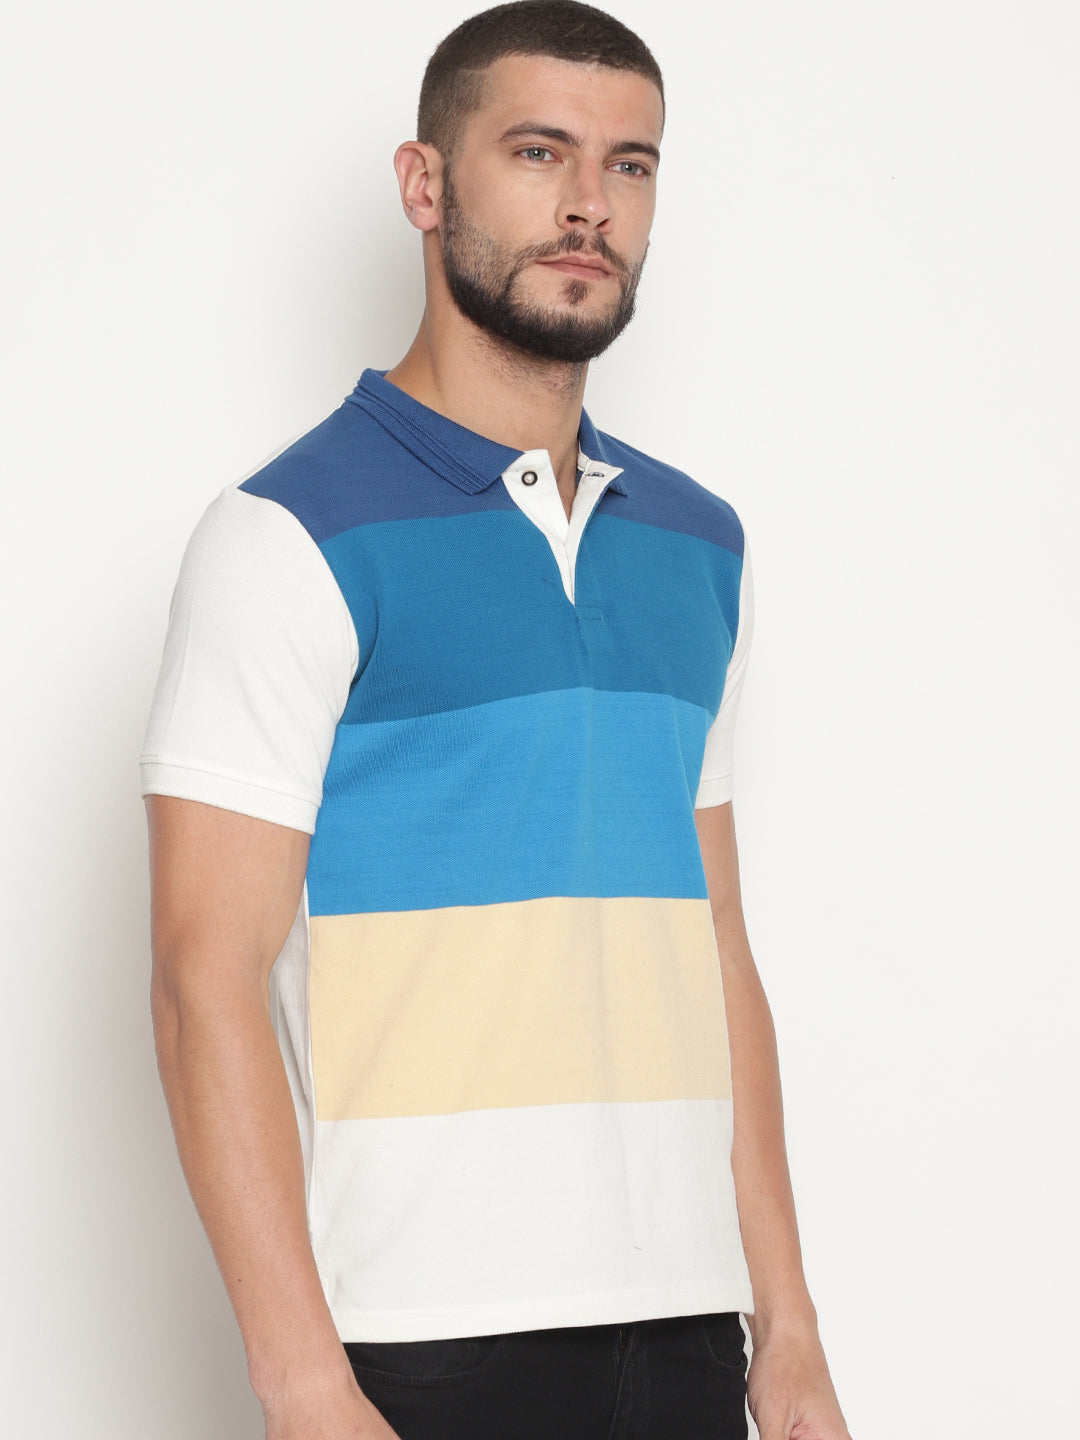 Men's Multi Colored Striped Polo T-Shirt